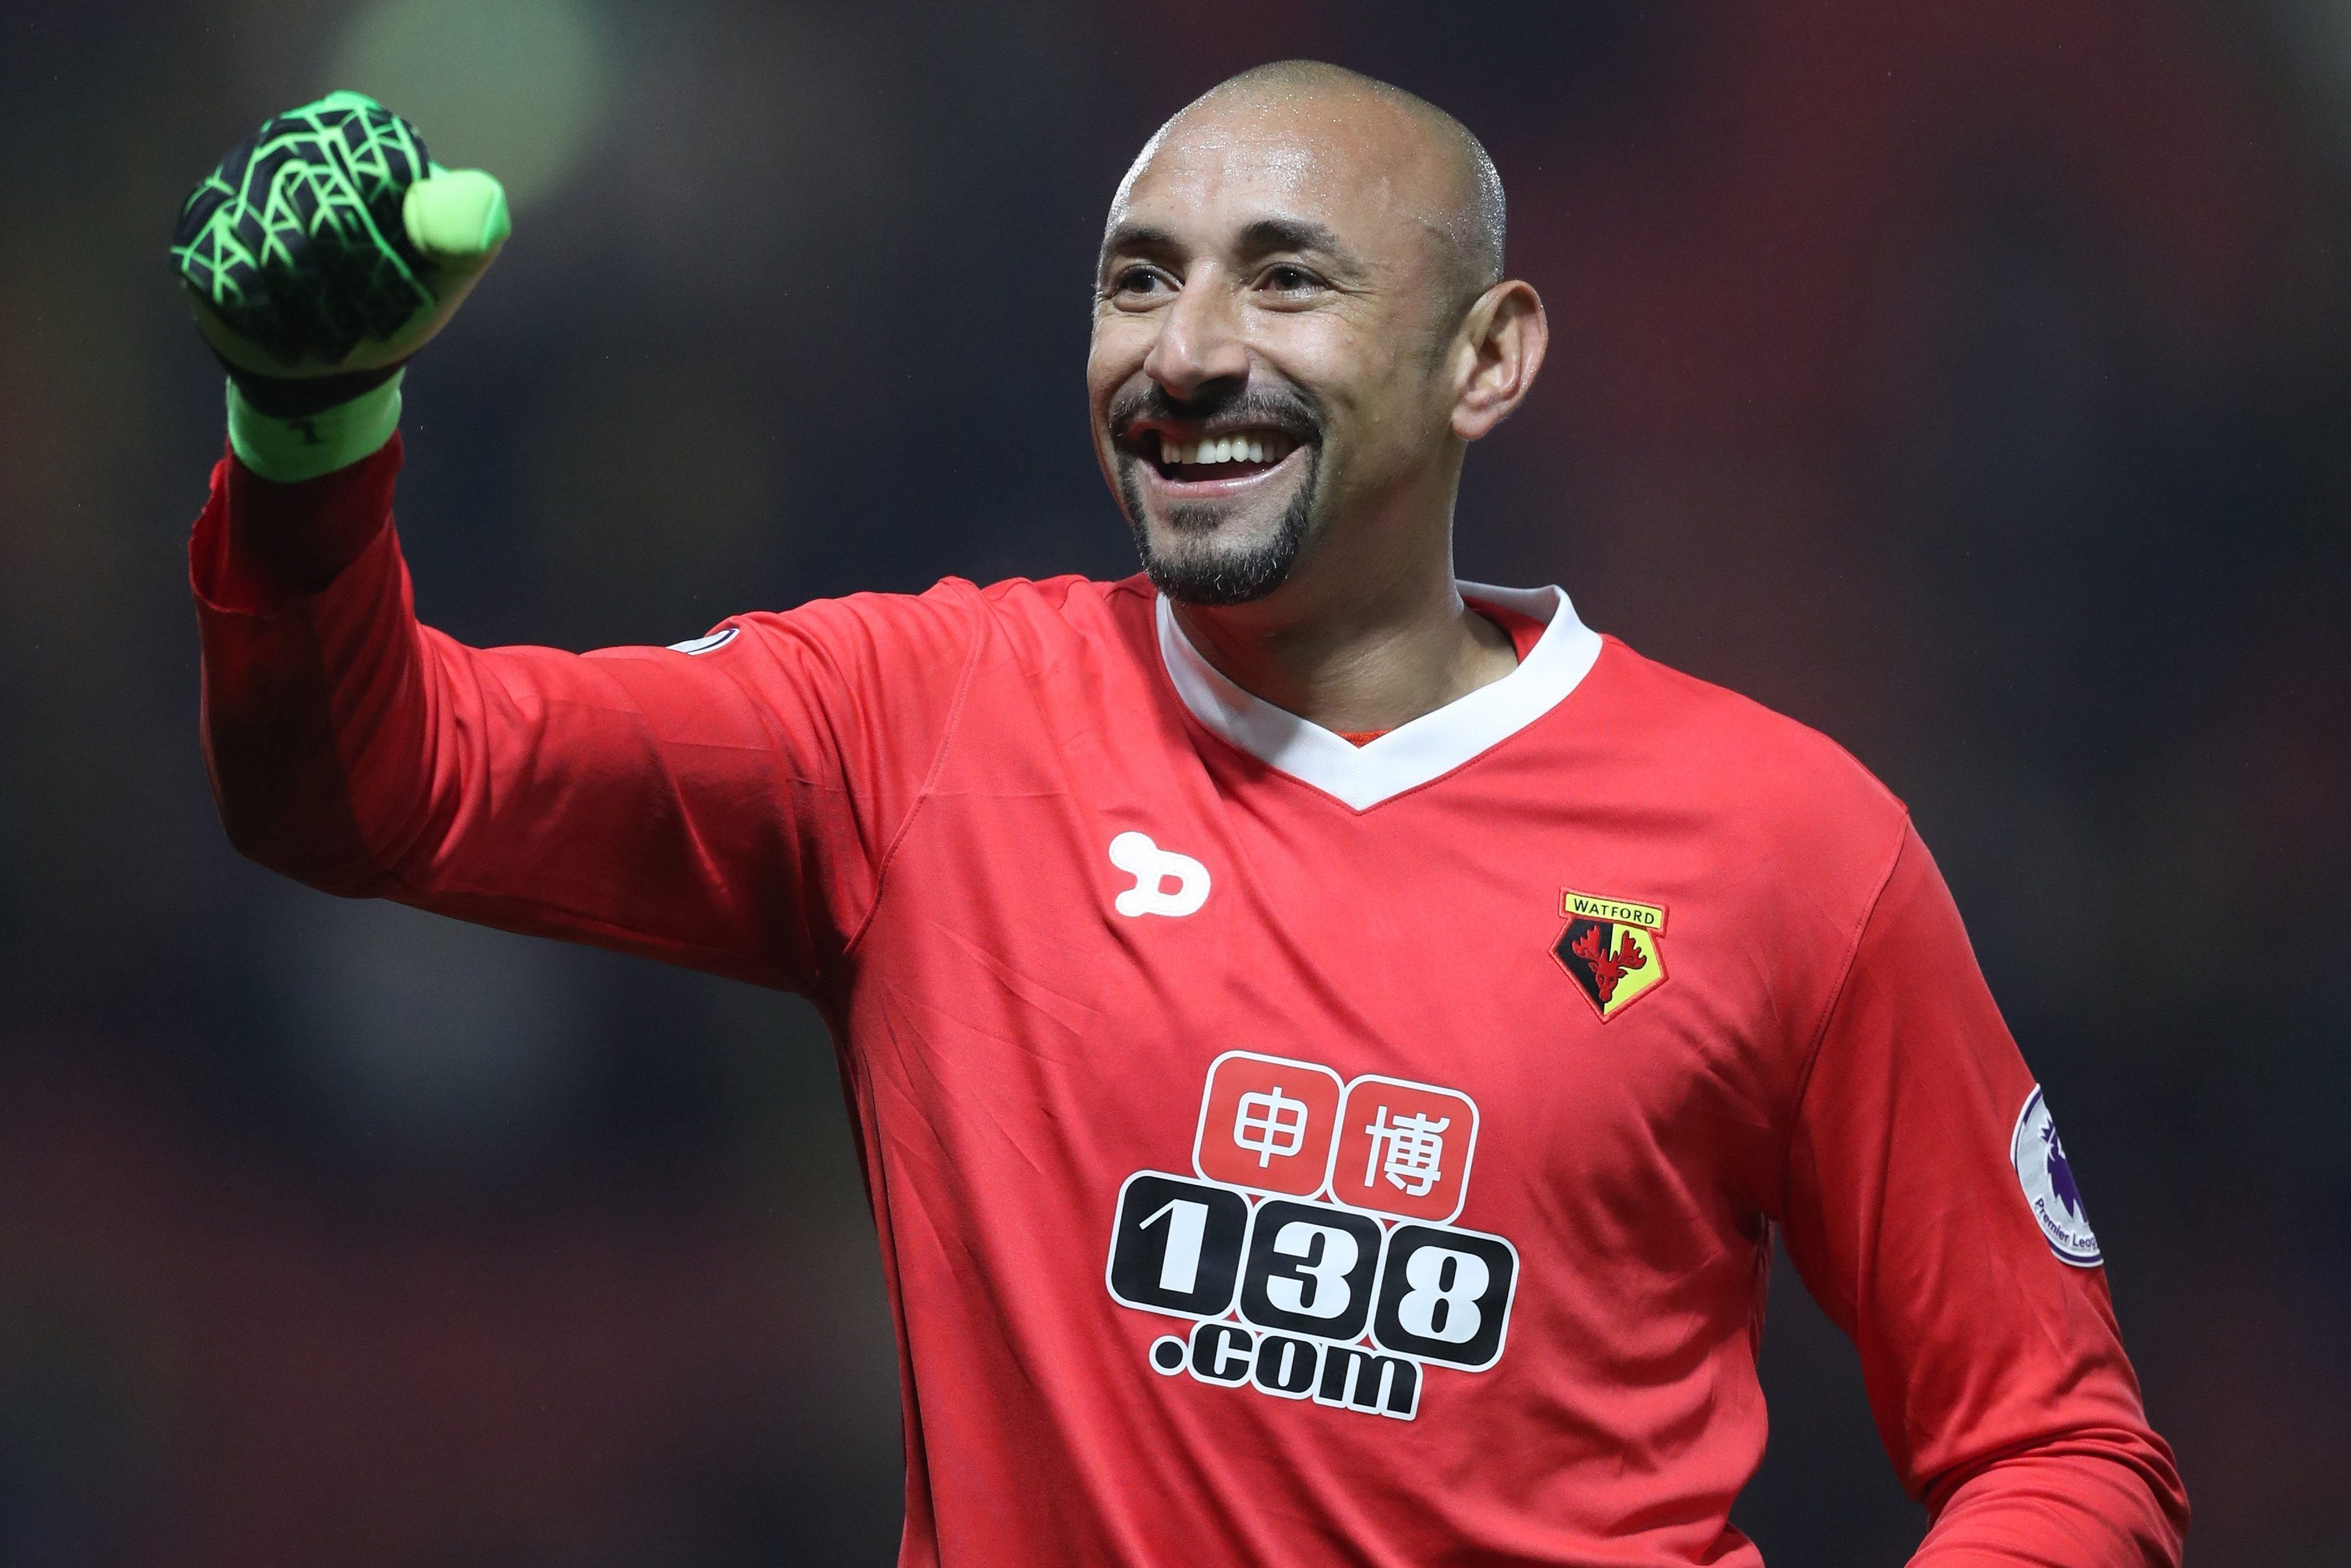 Watford keeper Heurelho Gomes gets 'call up from God' to become pastor when he retires this summer